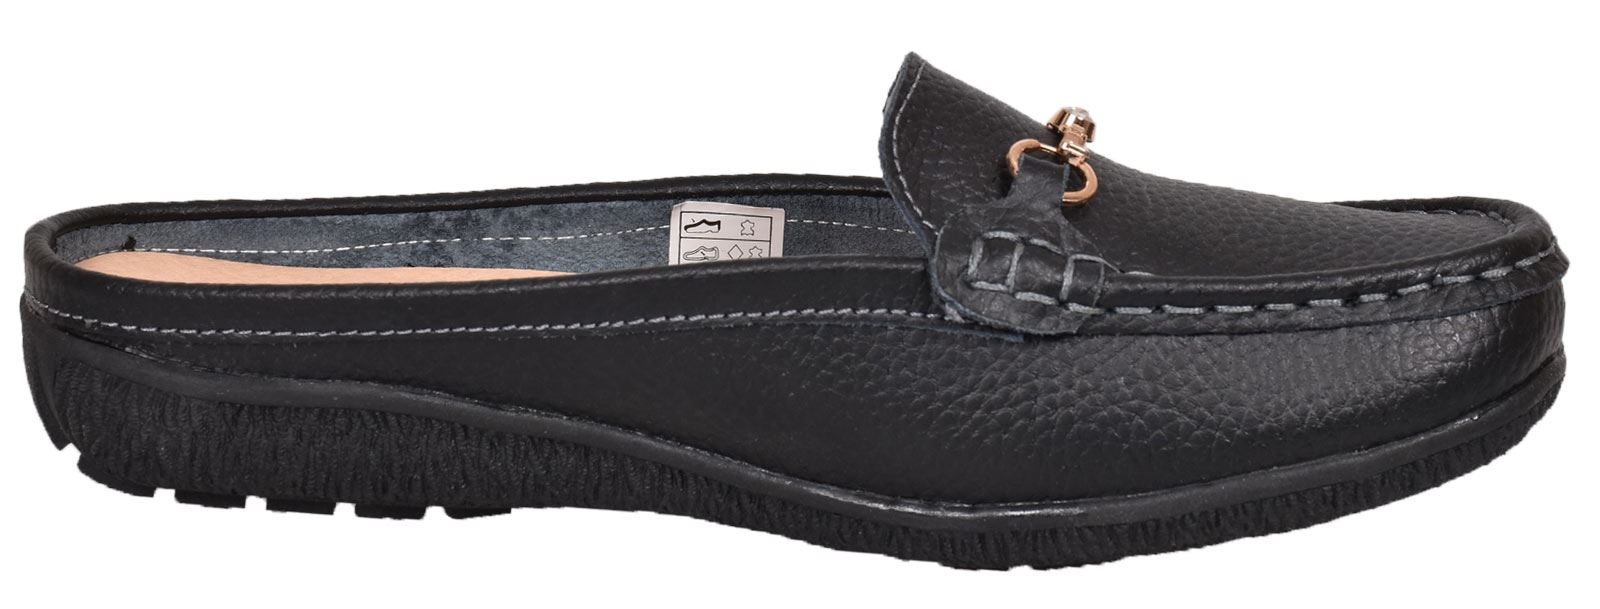 Ladies-Leather-Loafer-Mules-Comfort-Shoes-Womens-Slider-Moccasins-Shoes thumbnail 14